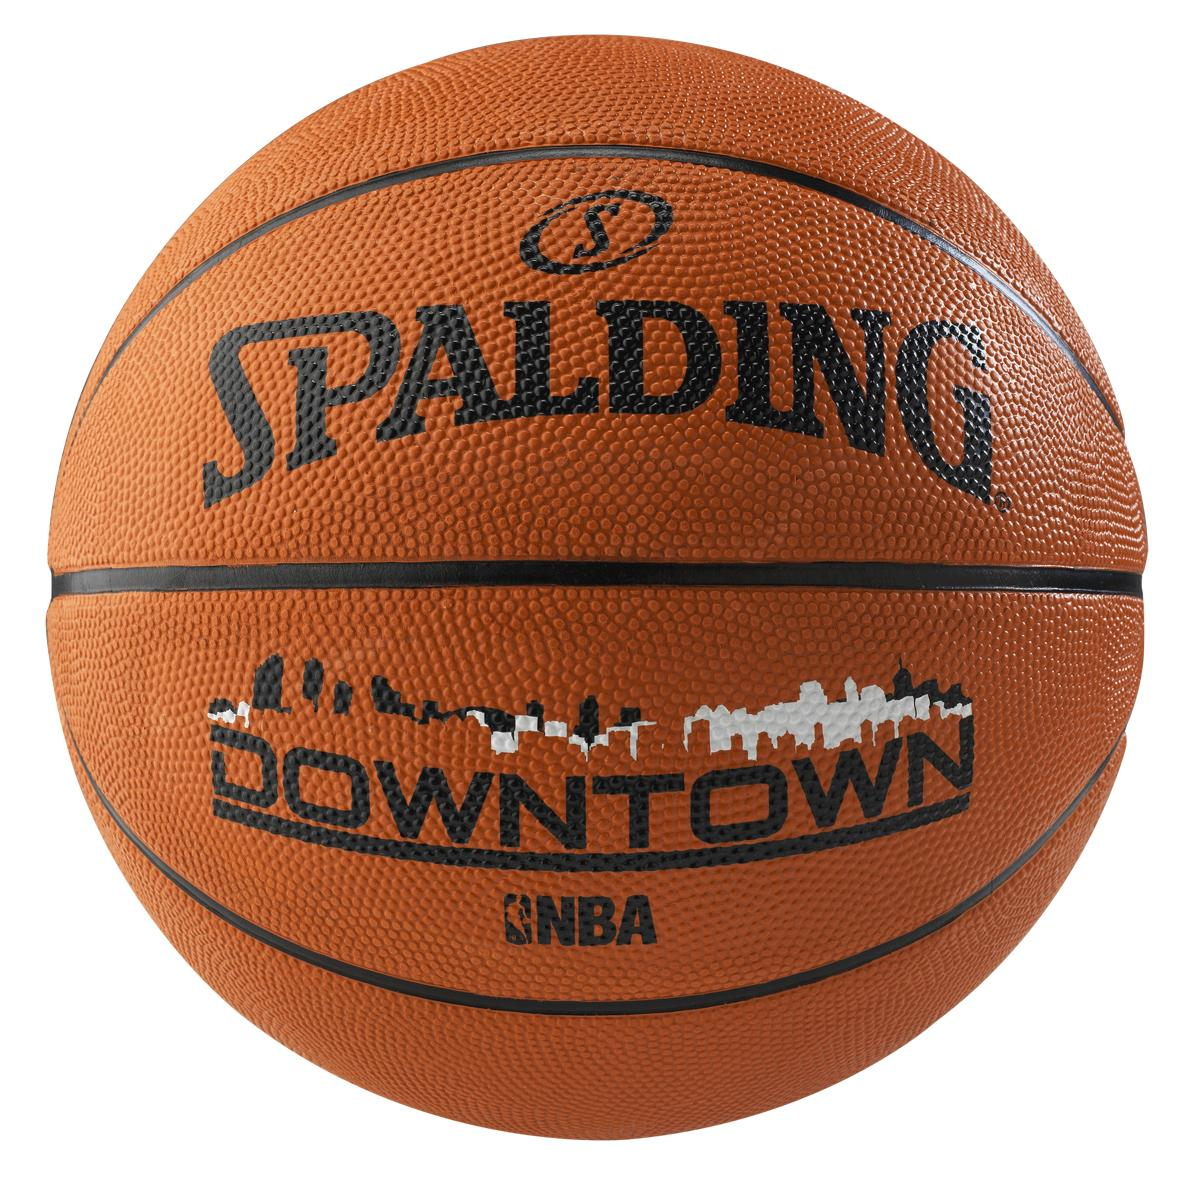 c8af6d9182 Spalding Basketball Philippines - Spalding Basketball Game for sale -  prices   reviews